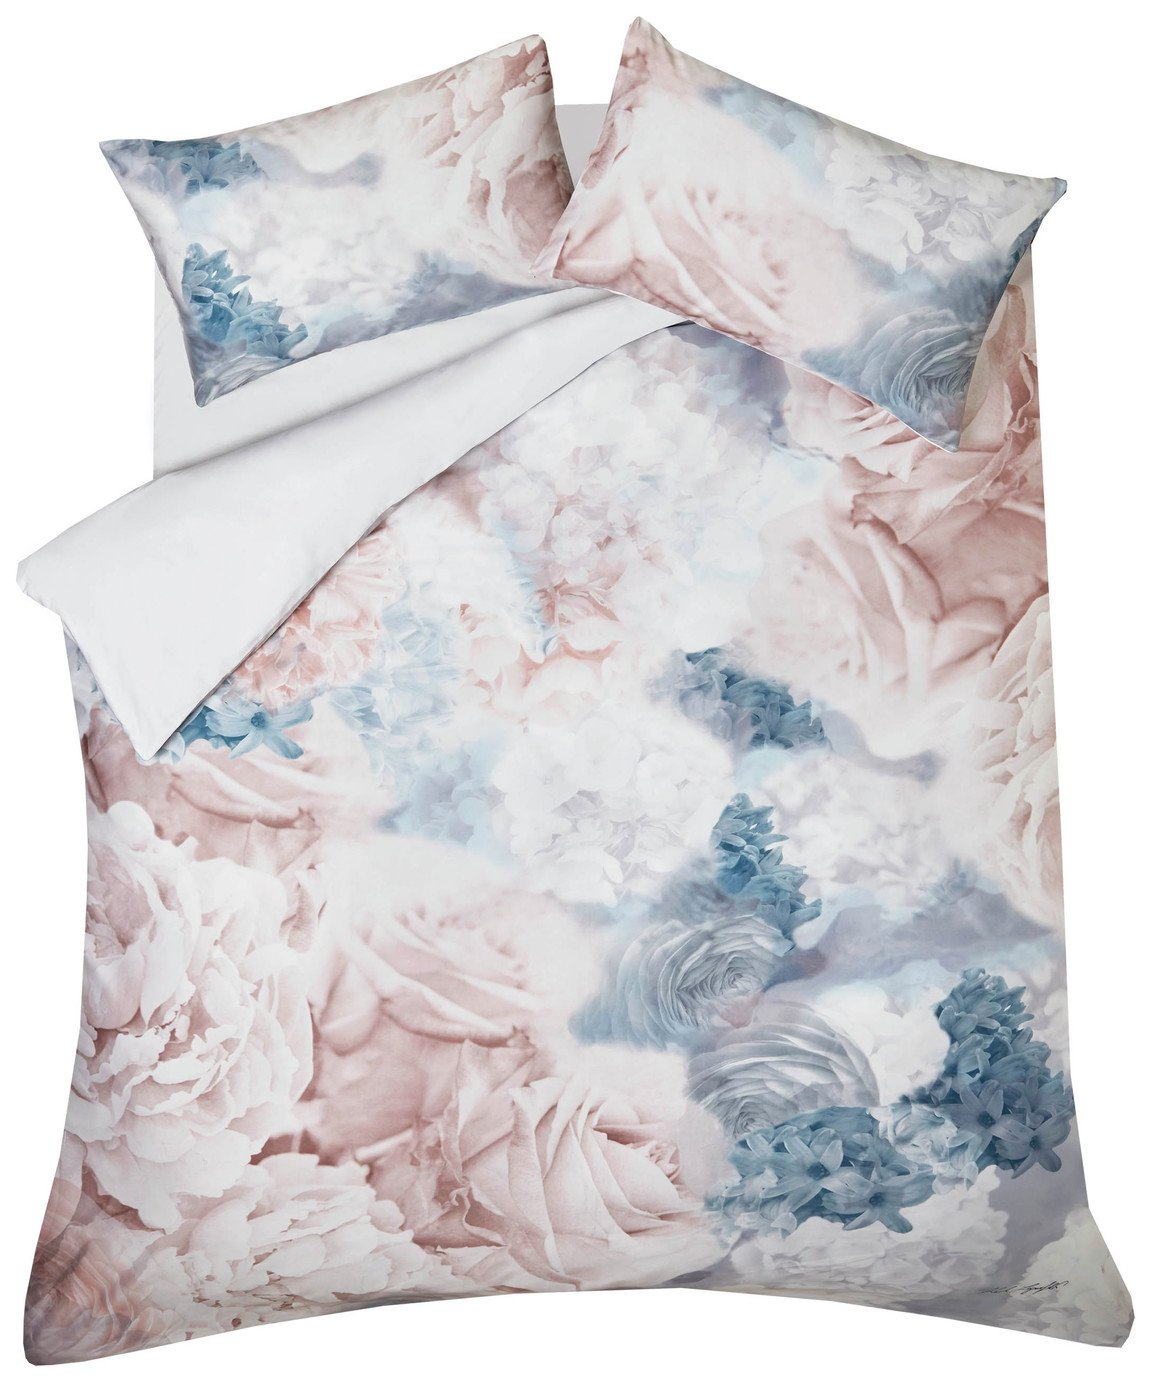 Karl Lagerfeld Flourish Bedding Set - Double